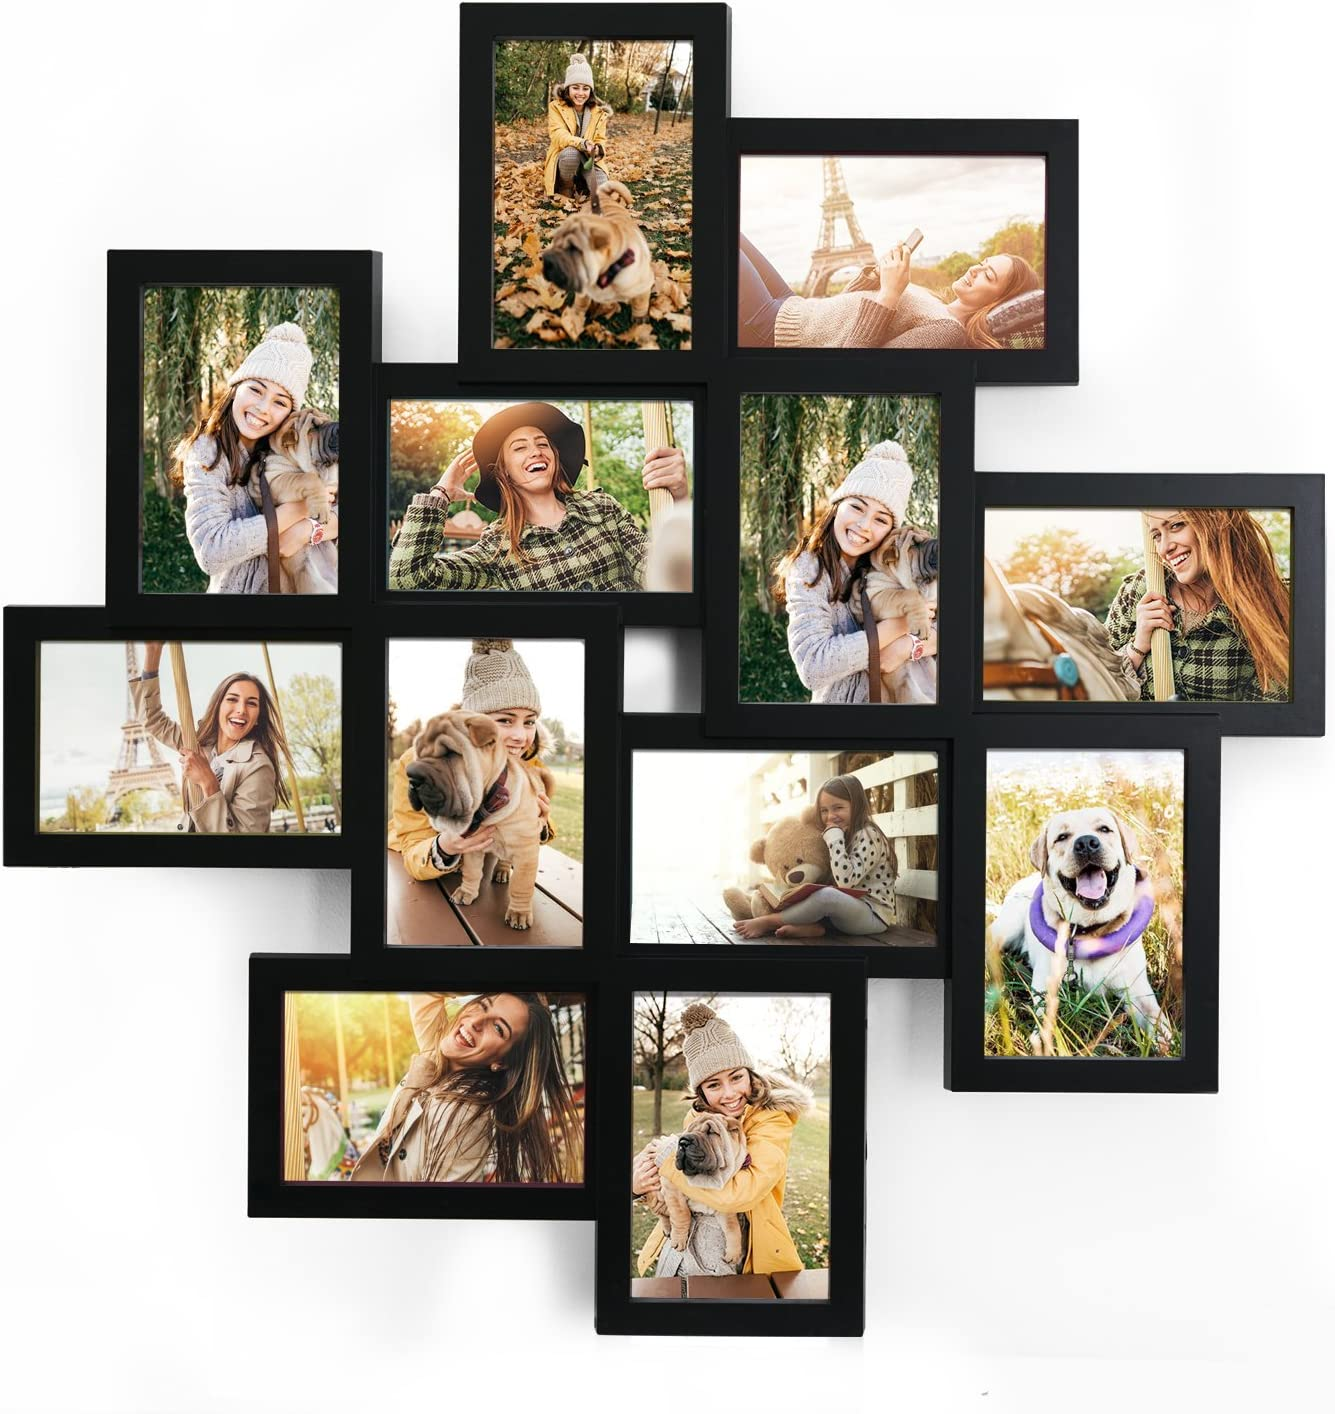 Amazon Com Adeco 12 Openings Plastic Wall Hanging Collage Picture Photo Frame Made To Display Twelve 4x6 Photos Or Print Black